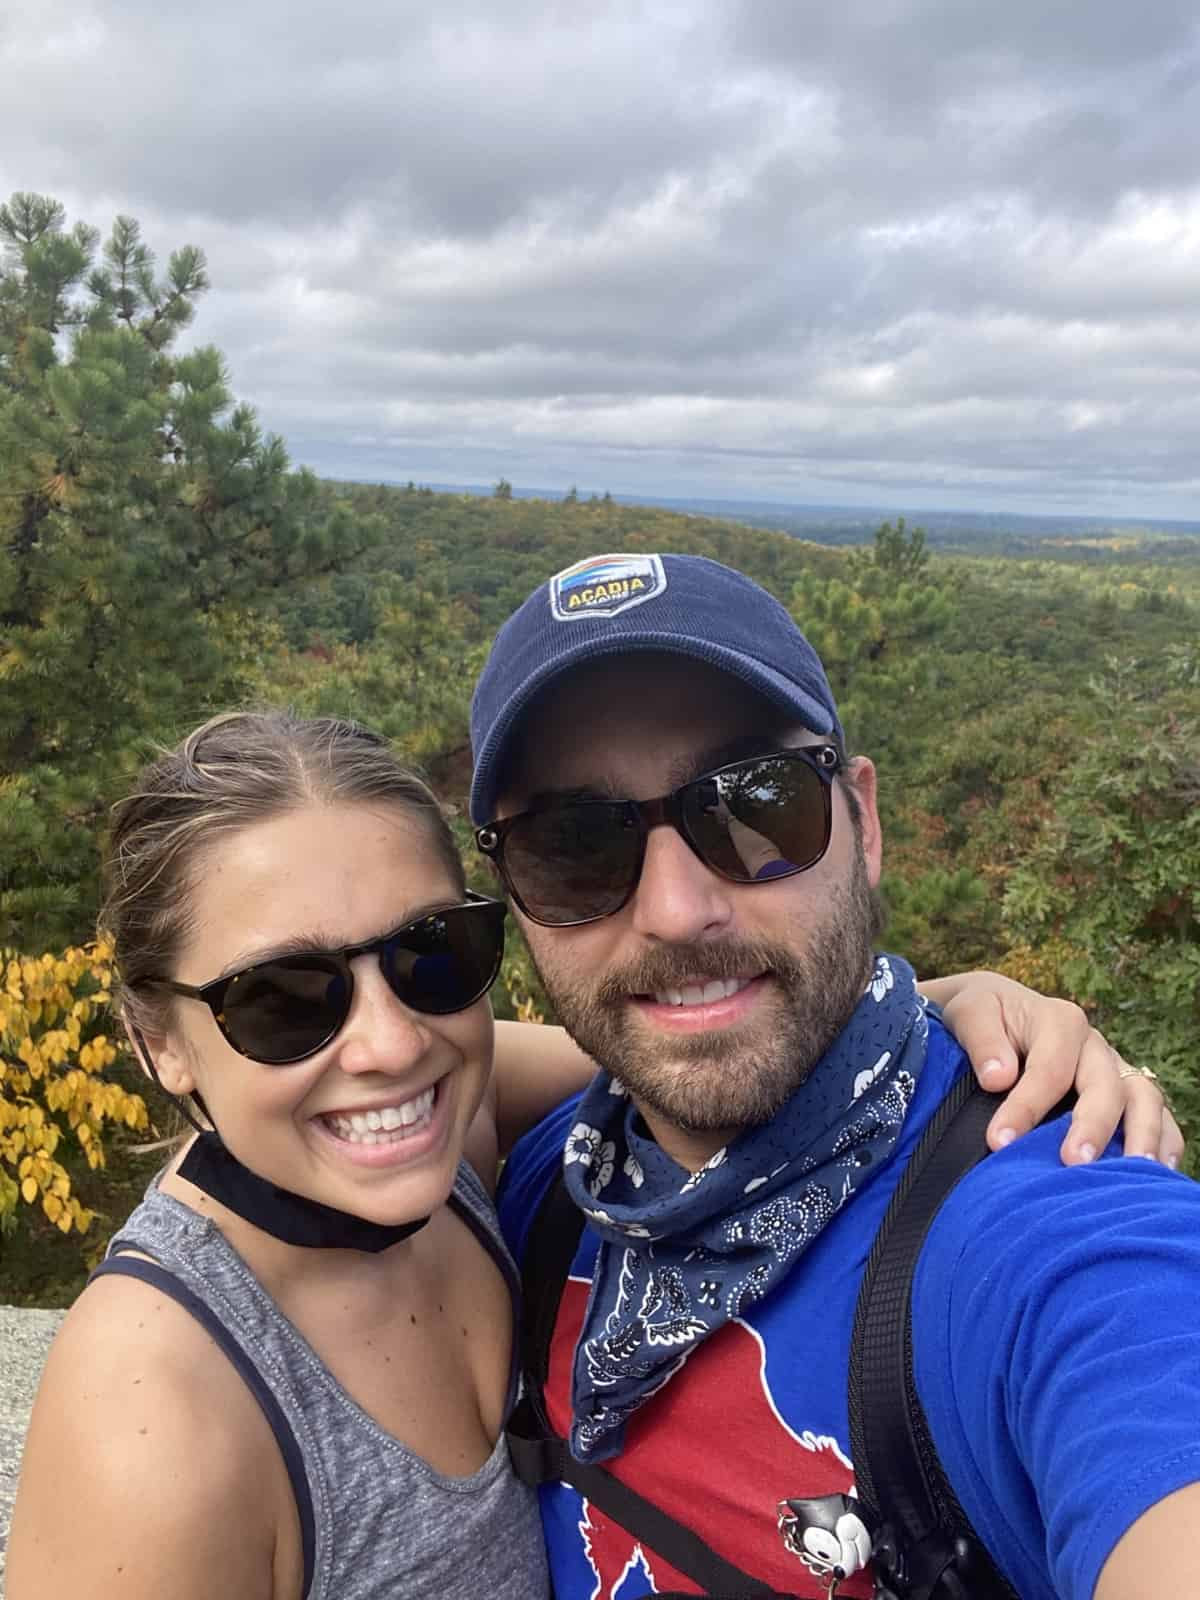 selfie image of couple hiking with sunglasses on and trees and sky in background